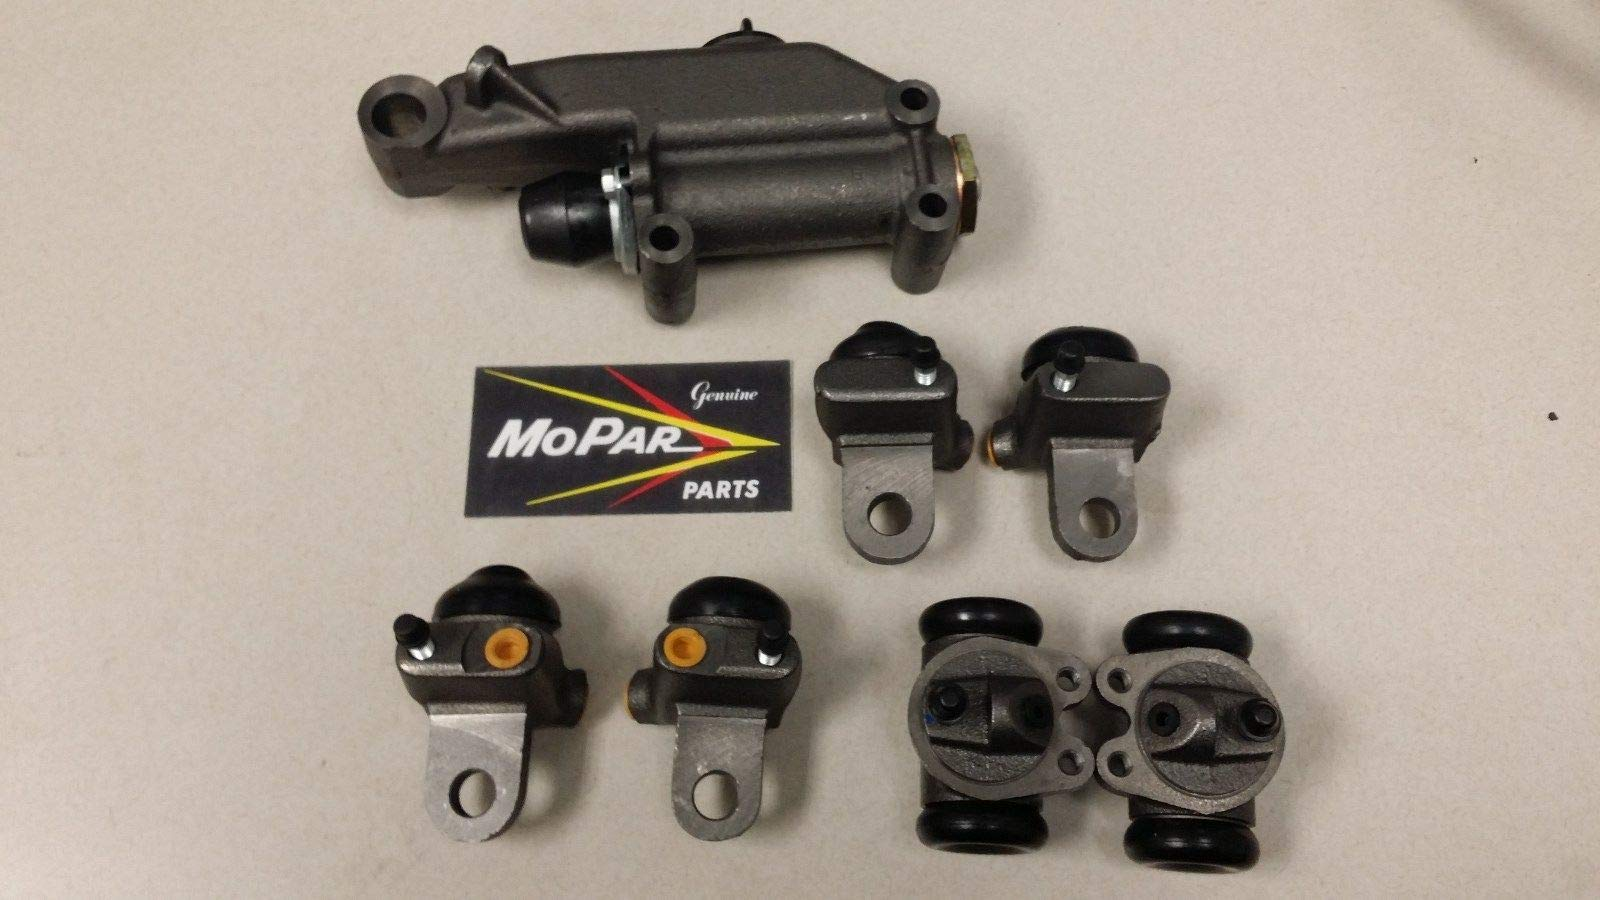 1948 WHEEL CYLINDERS SET BRAKE MASTER CYLINDER D24 P15 COMPATIBLE WITH CHRYSLER by Vintage American Auto Parts